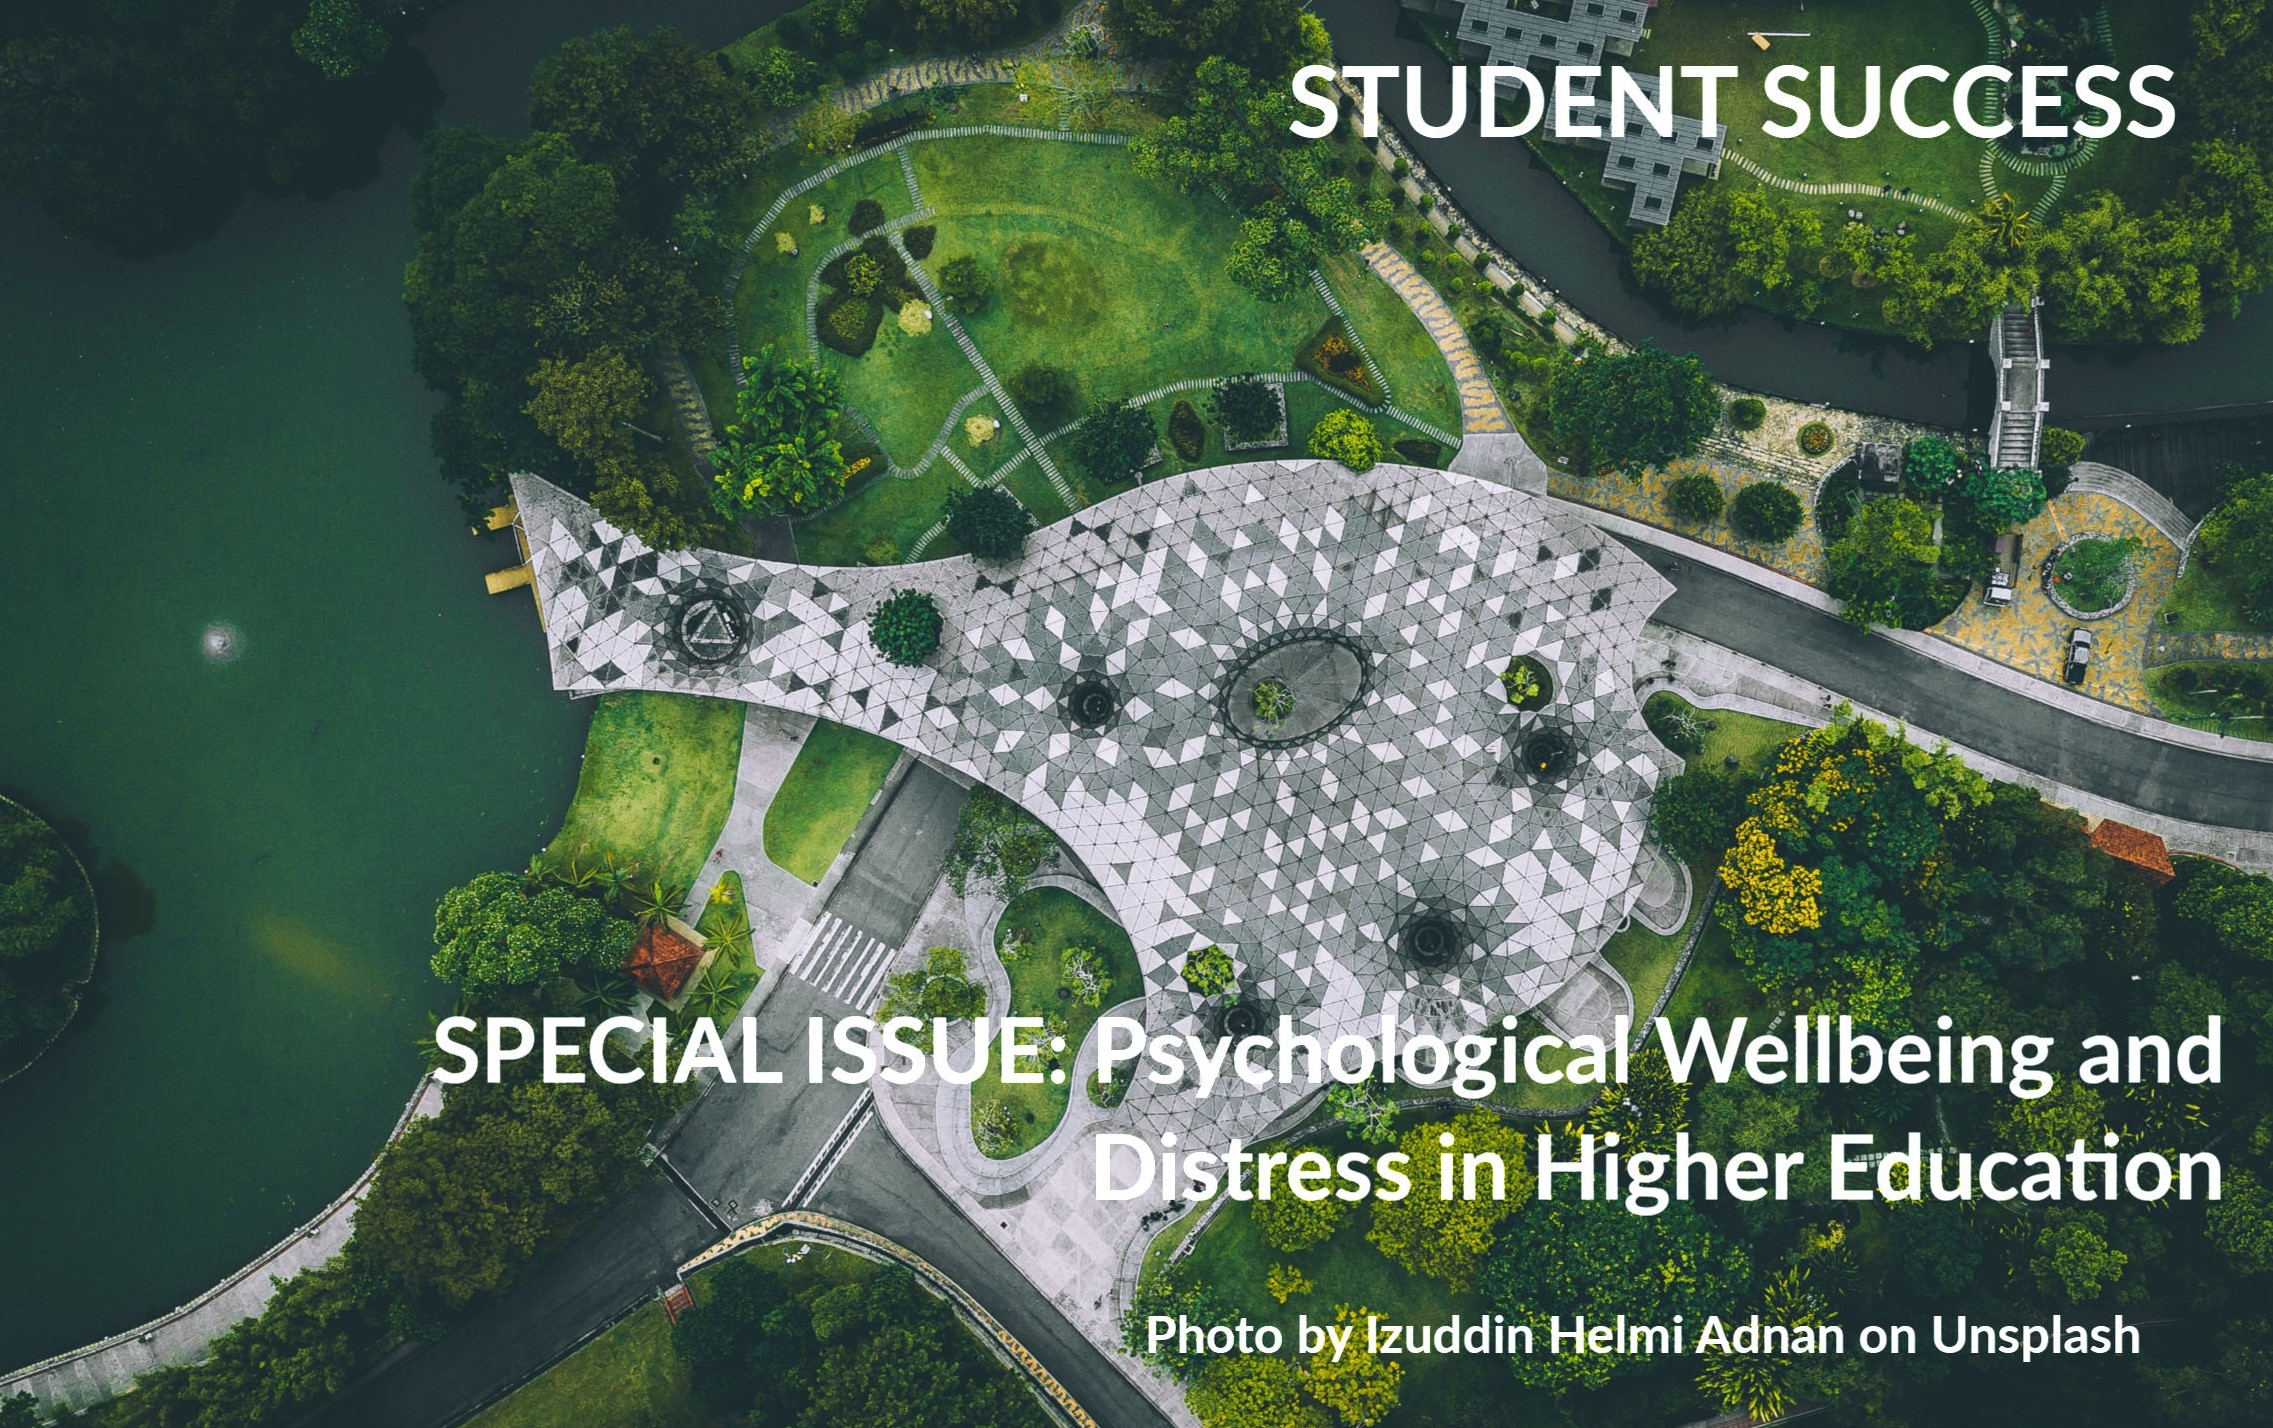 2019 Special Issue:  Psychological Wellbeing and Distress in Higher Education